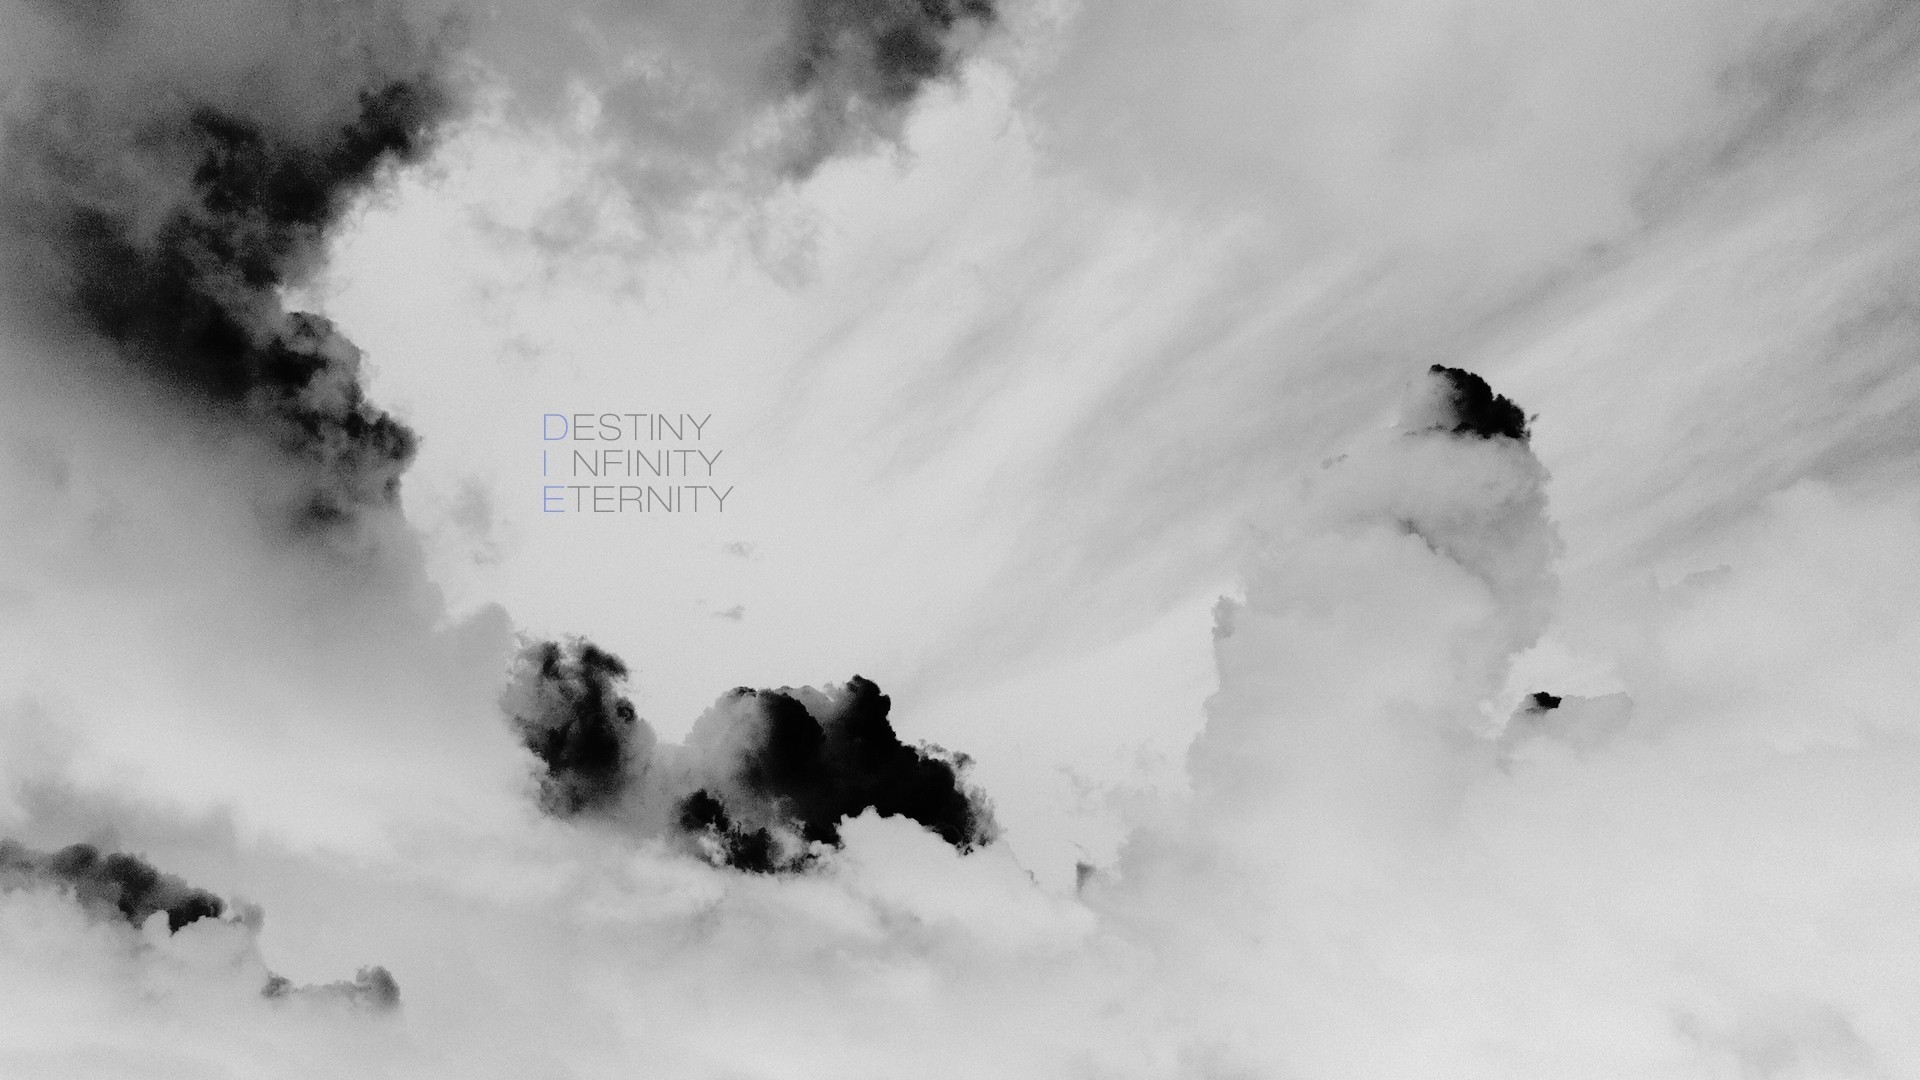 Anathema Eternity Clouds Infinity Lyrics Wallpaper